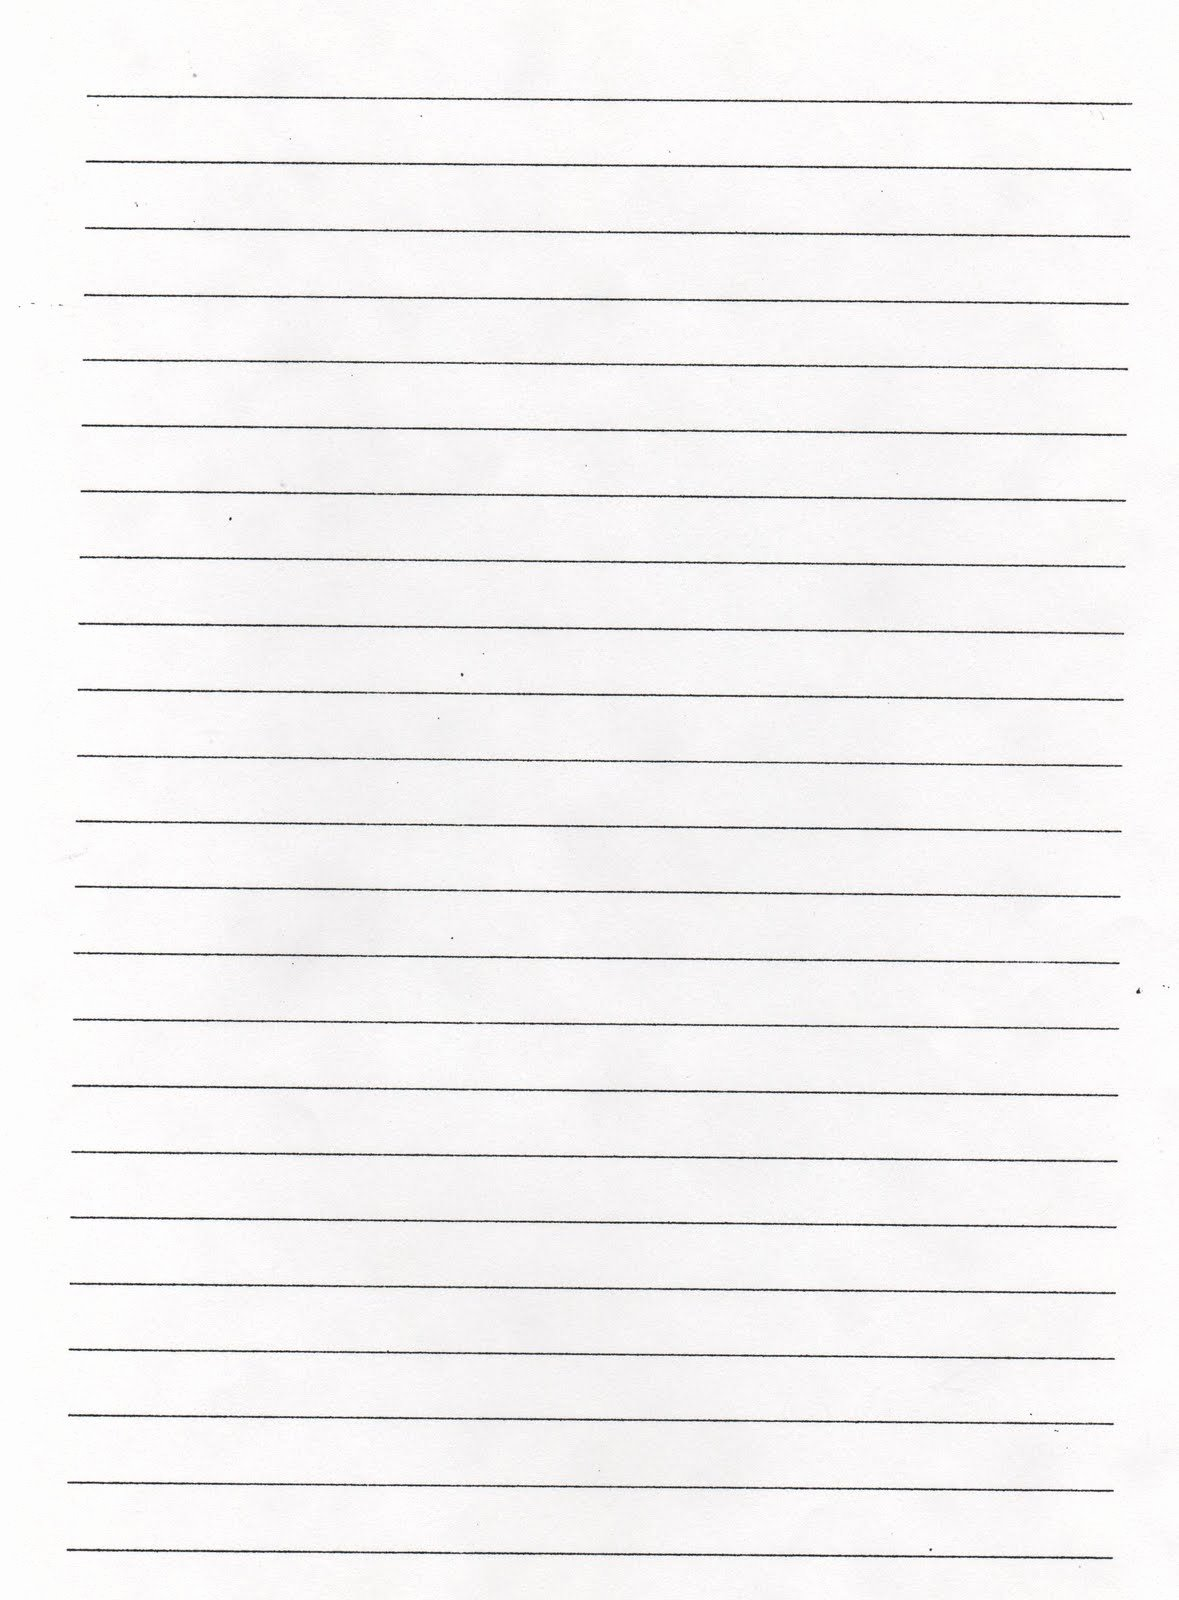 Free Lined Paper to Print New Elementary School Enrichment Activities Lined Paper